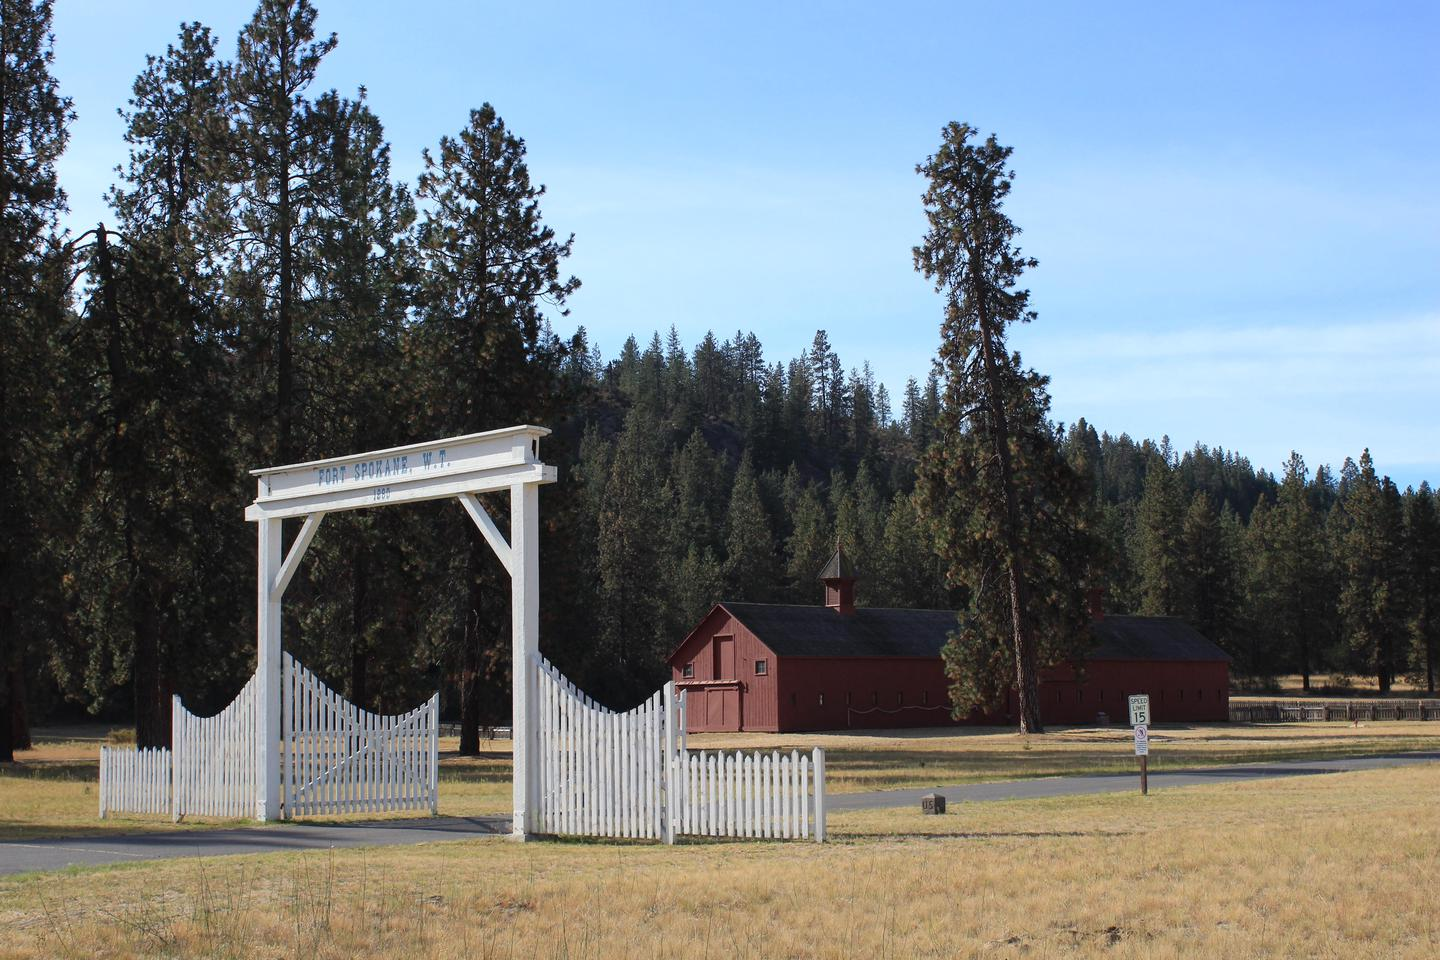 Entrance Gate and Mule BarnFort Spokane entrance and mule barn